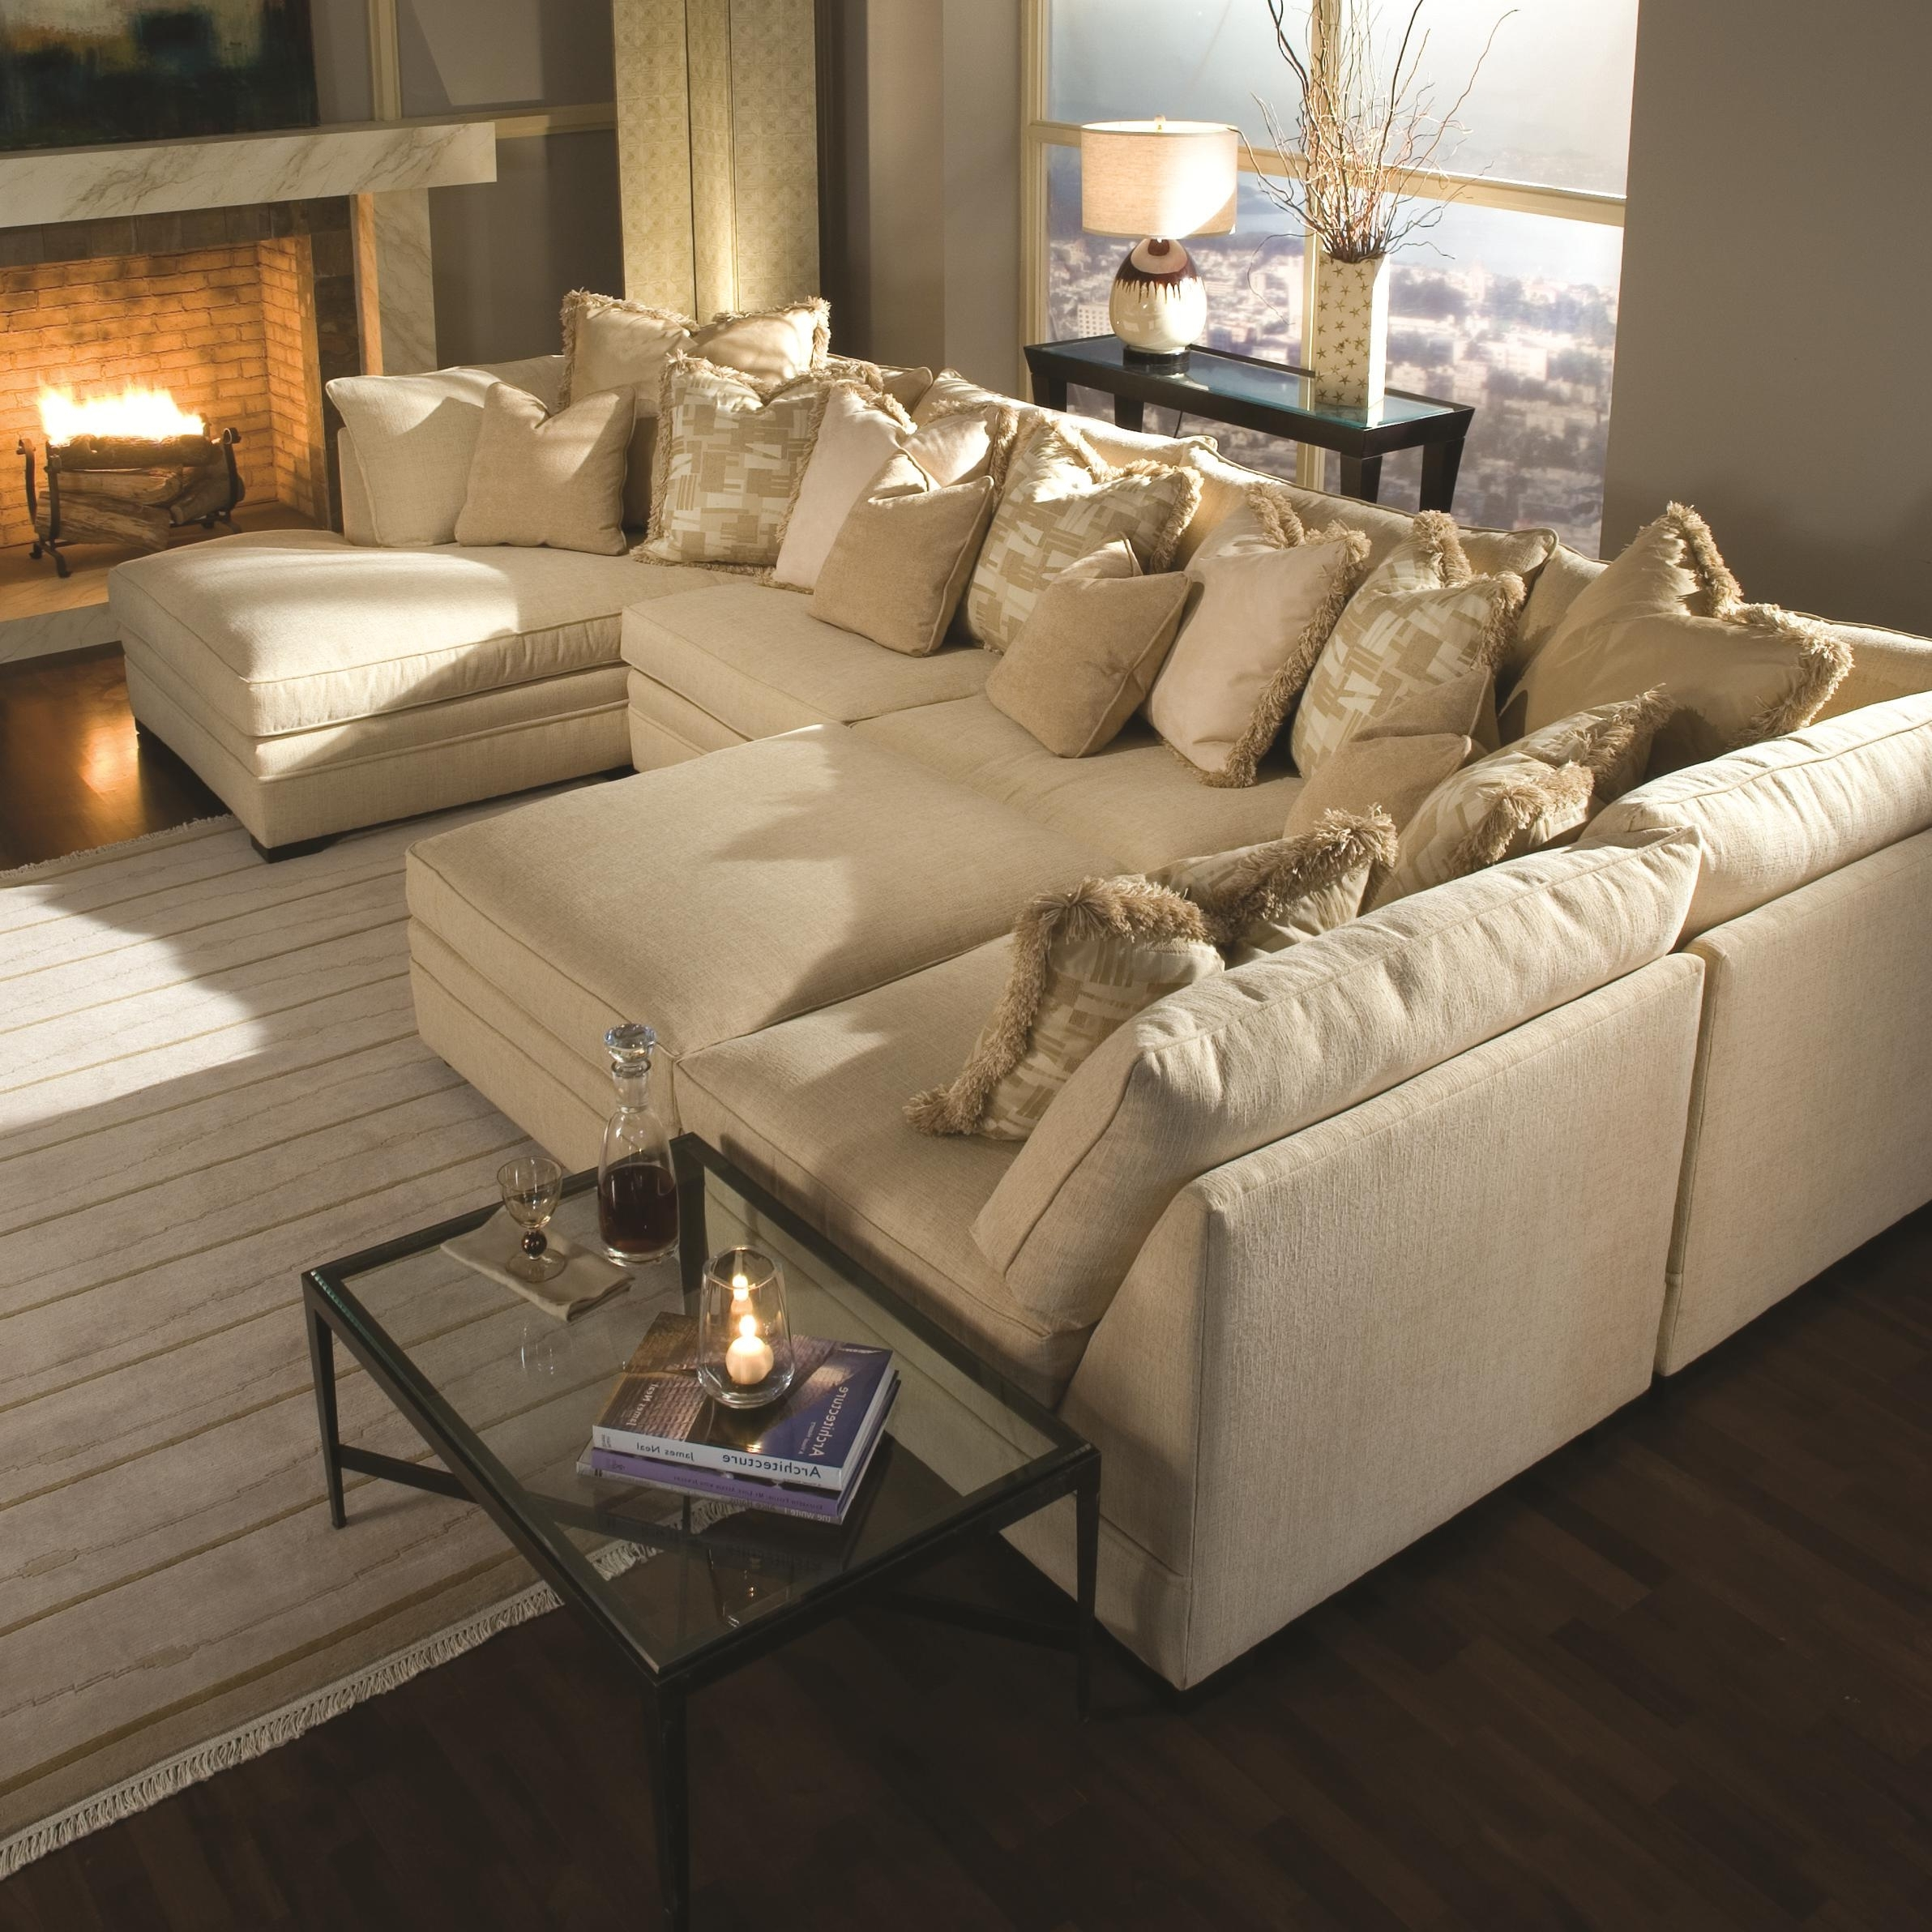 Trendy Dania Sectional Sofas Pertaining To Huntington House 7100 Contemporary U Shape Sectional Sofa With (View 14 of 15)